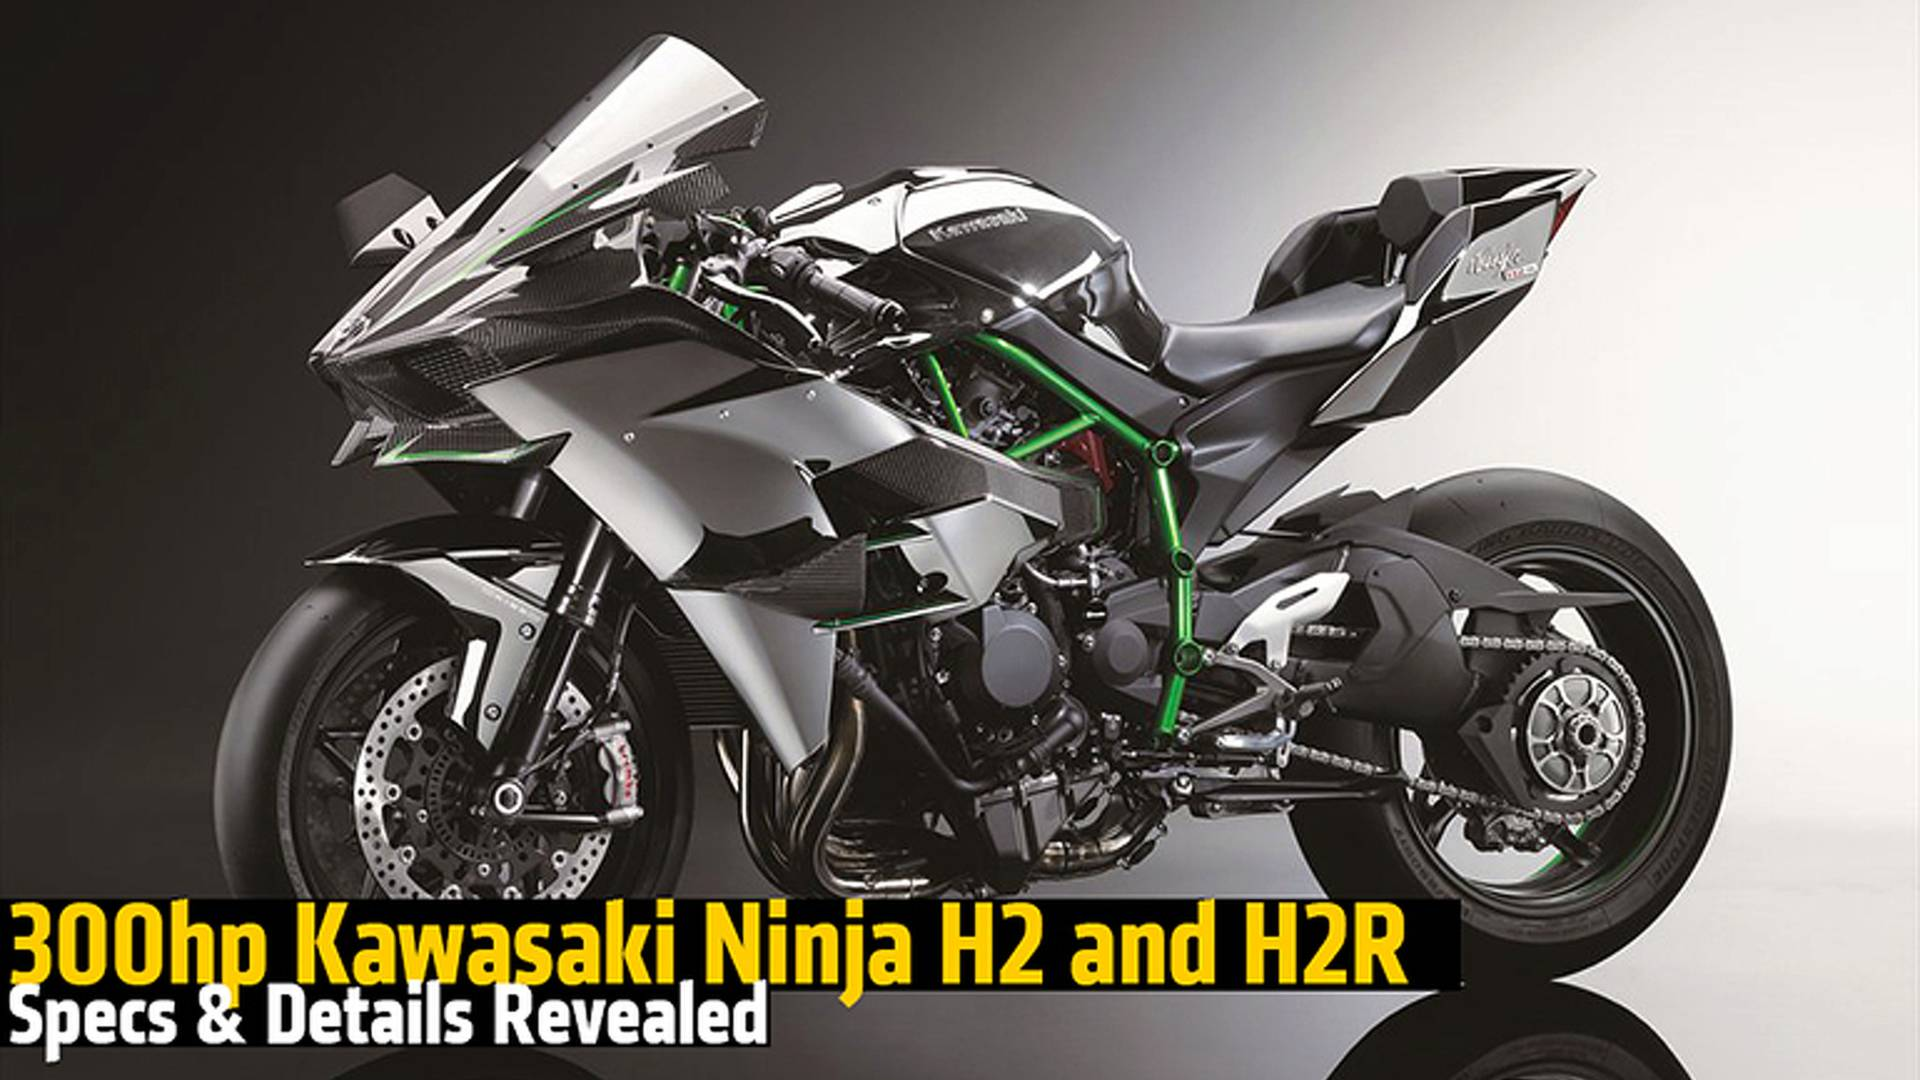 300hp Kawasaki Ninja H2 And H2r Specs Details Revealed